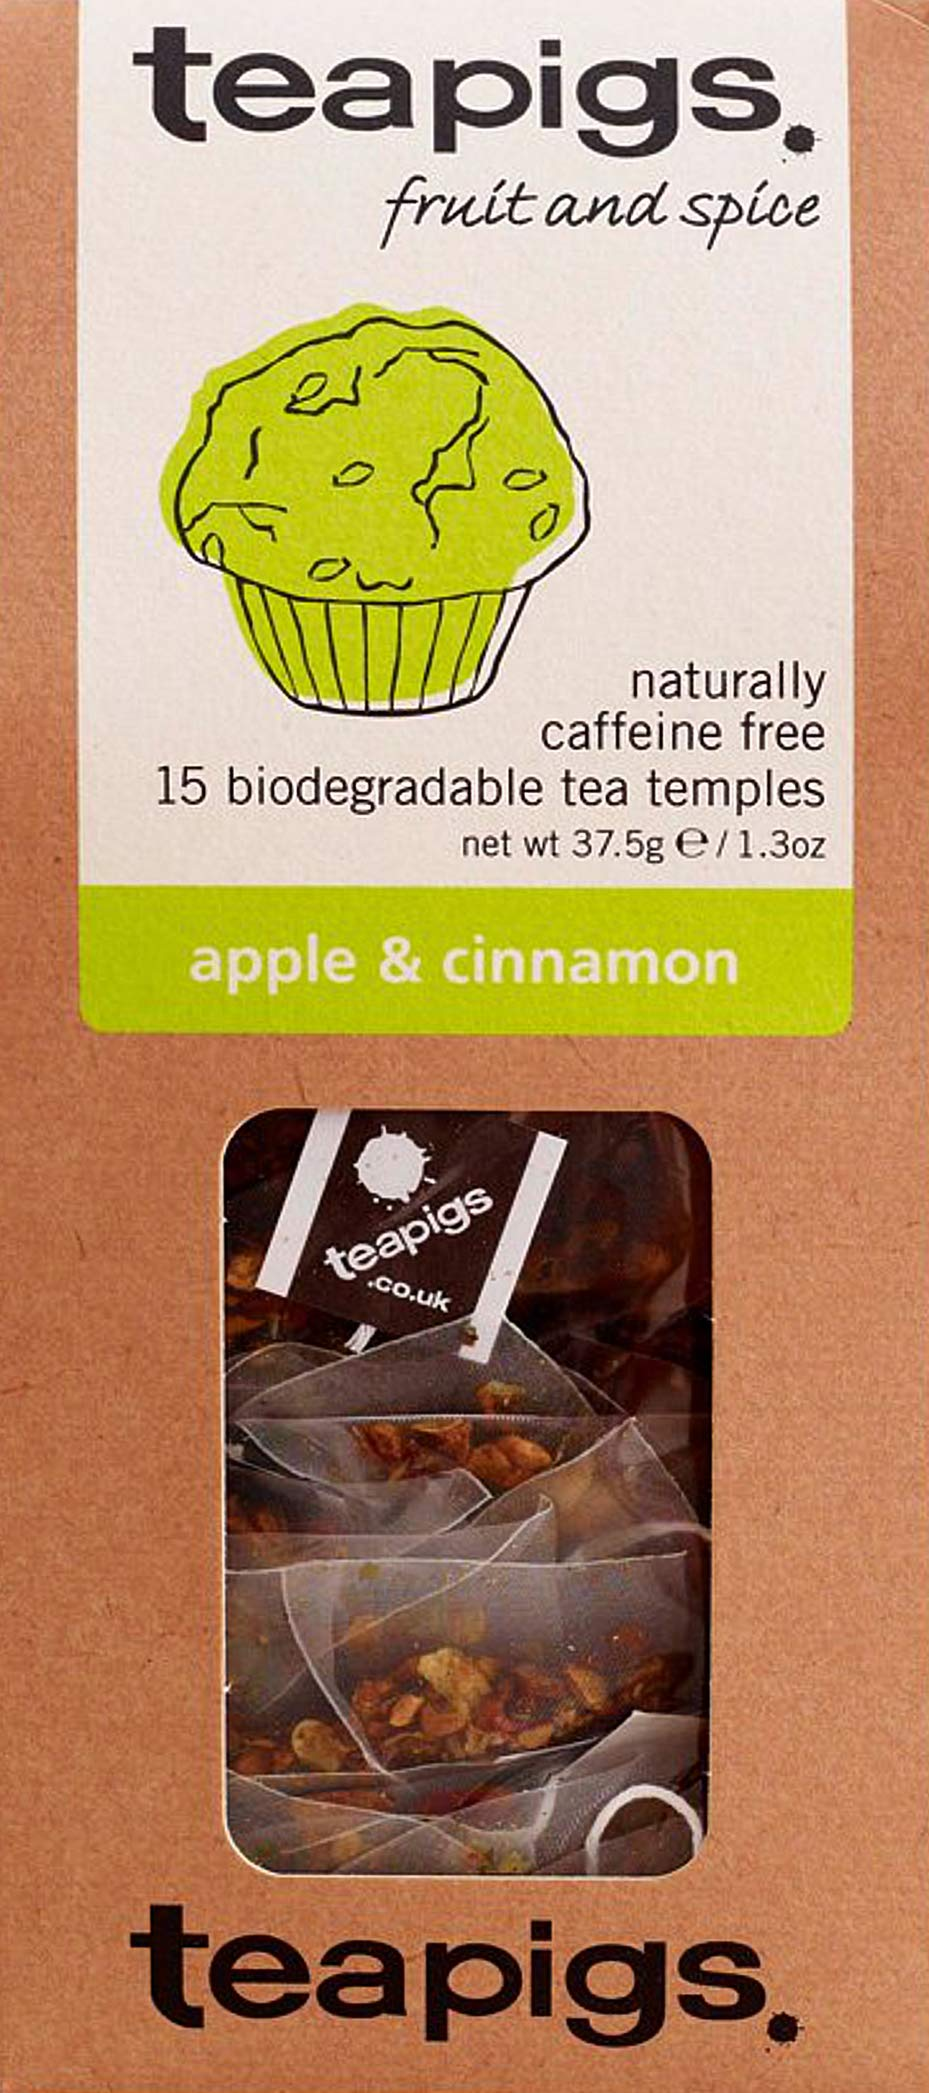 Teapigs apple and cinnamon tea bundle (infusions) (3 packs of 15 bags) (45 bags) (a fruity, spicy tea with aromas of apple, cinnamon) (brews in 3 minutes)